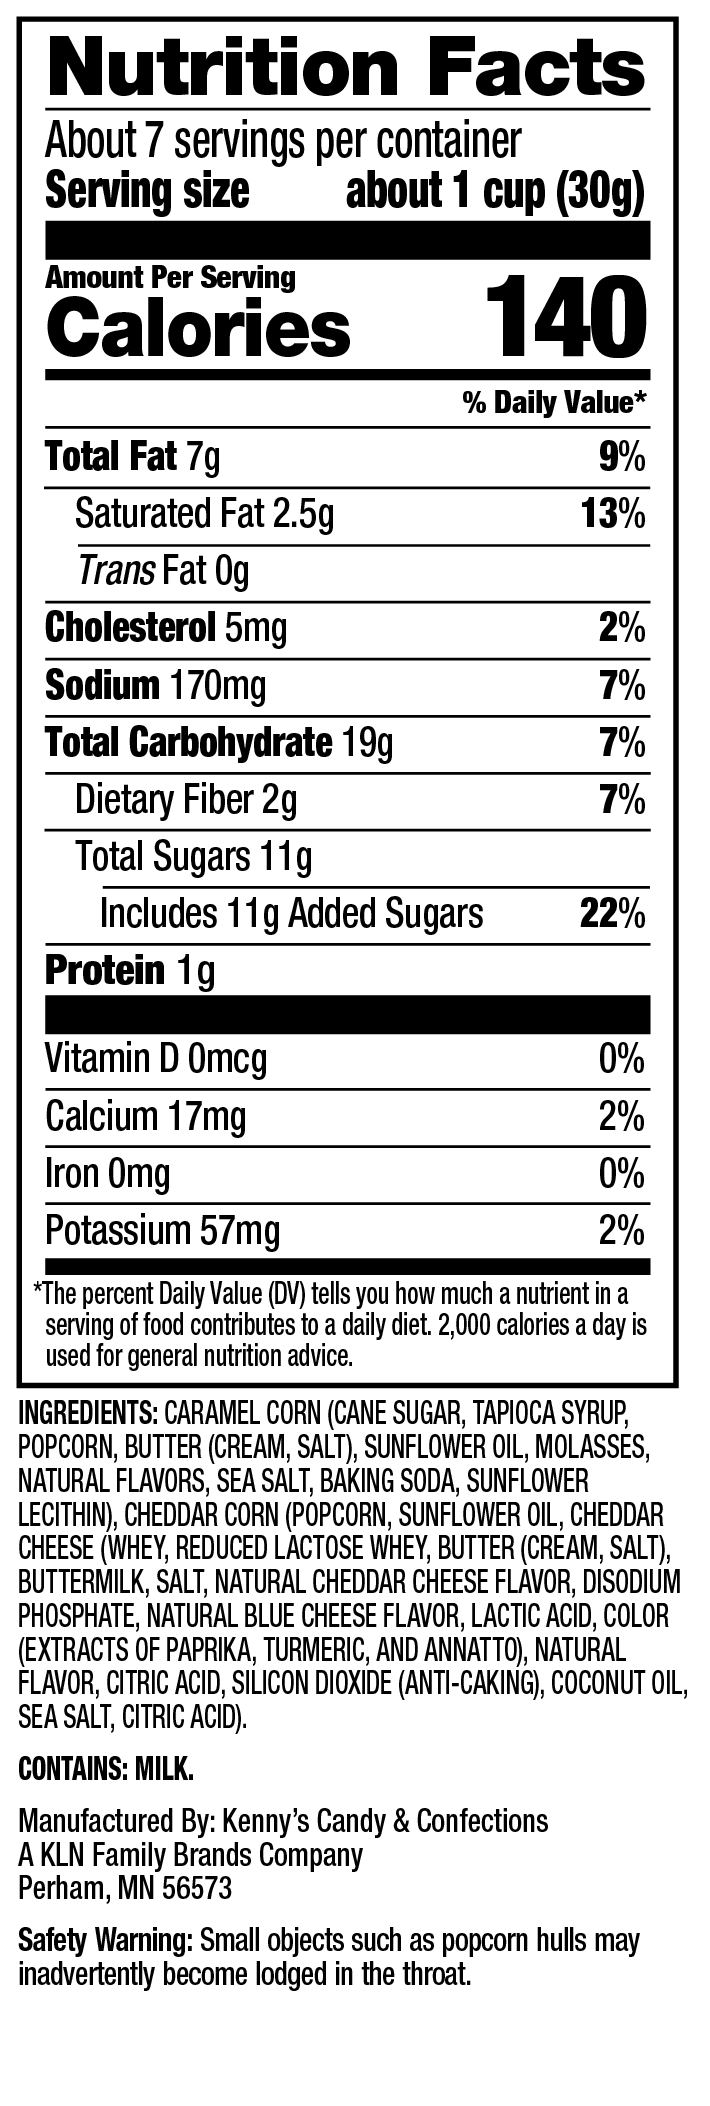 Nutrition Facts - Sweet Chaos Chaos Mix Popcorn